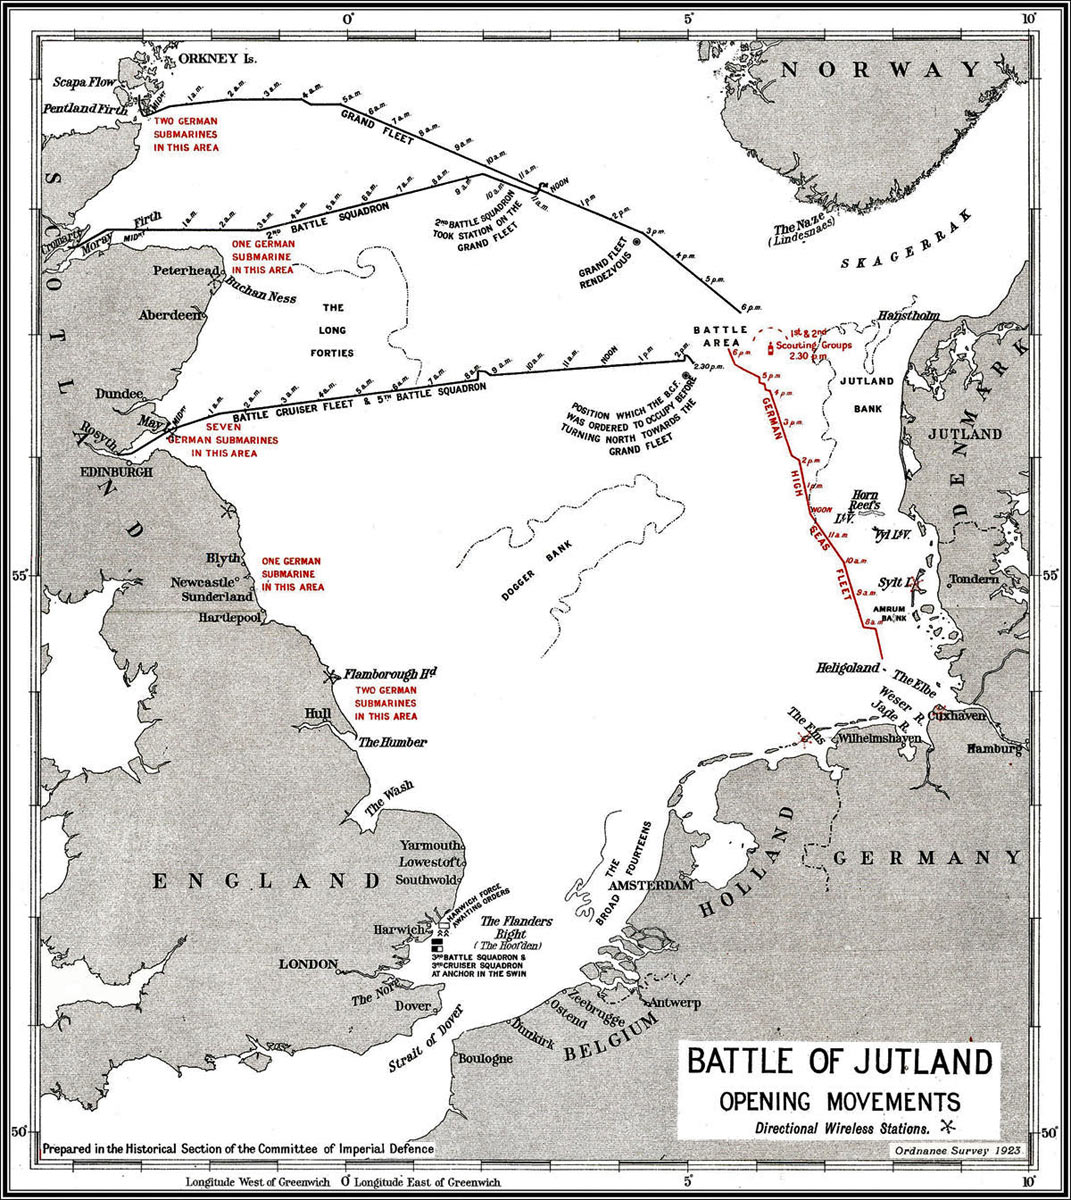 Map of the North Sea showing the advance of the British and German Fleets to the Battle of Jutland on 31st May 1916